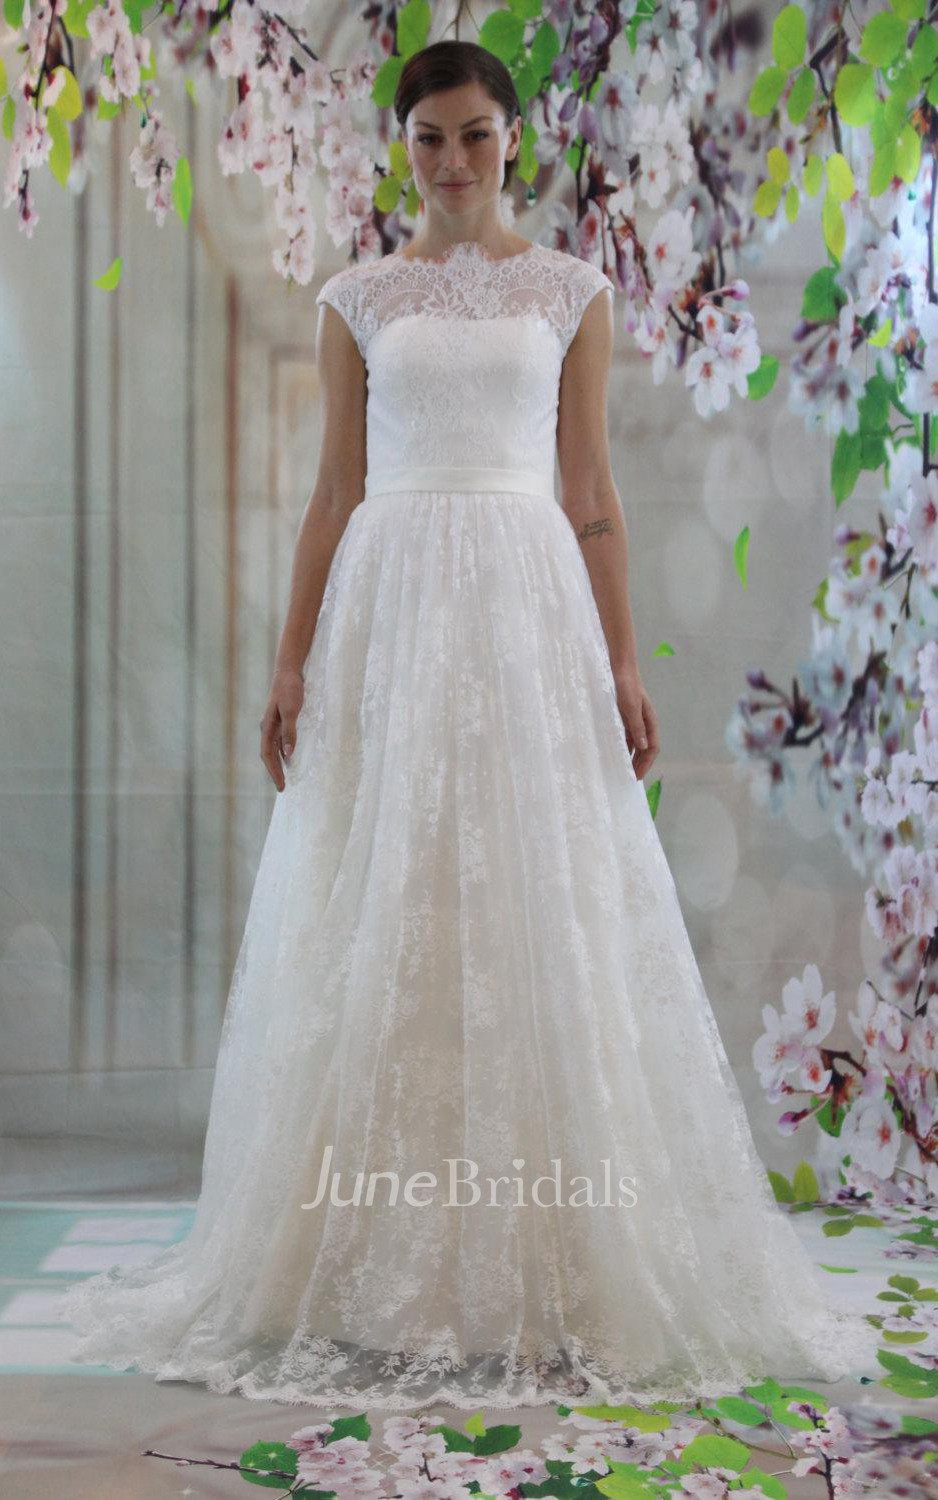 4a620c54584fa High-Neck Cap Sleeve A-Line Lace Wedding Dress With Court Train - June  Bridals